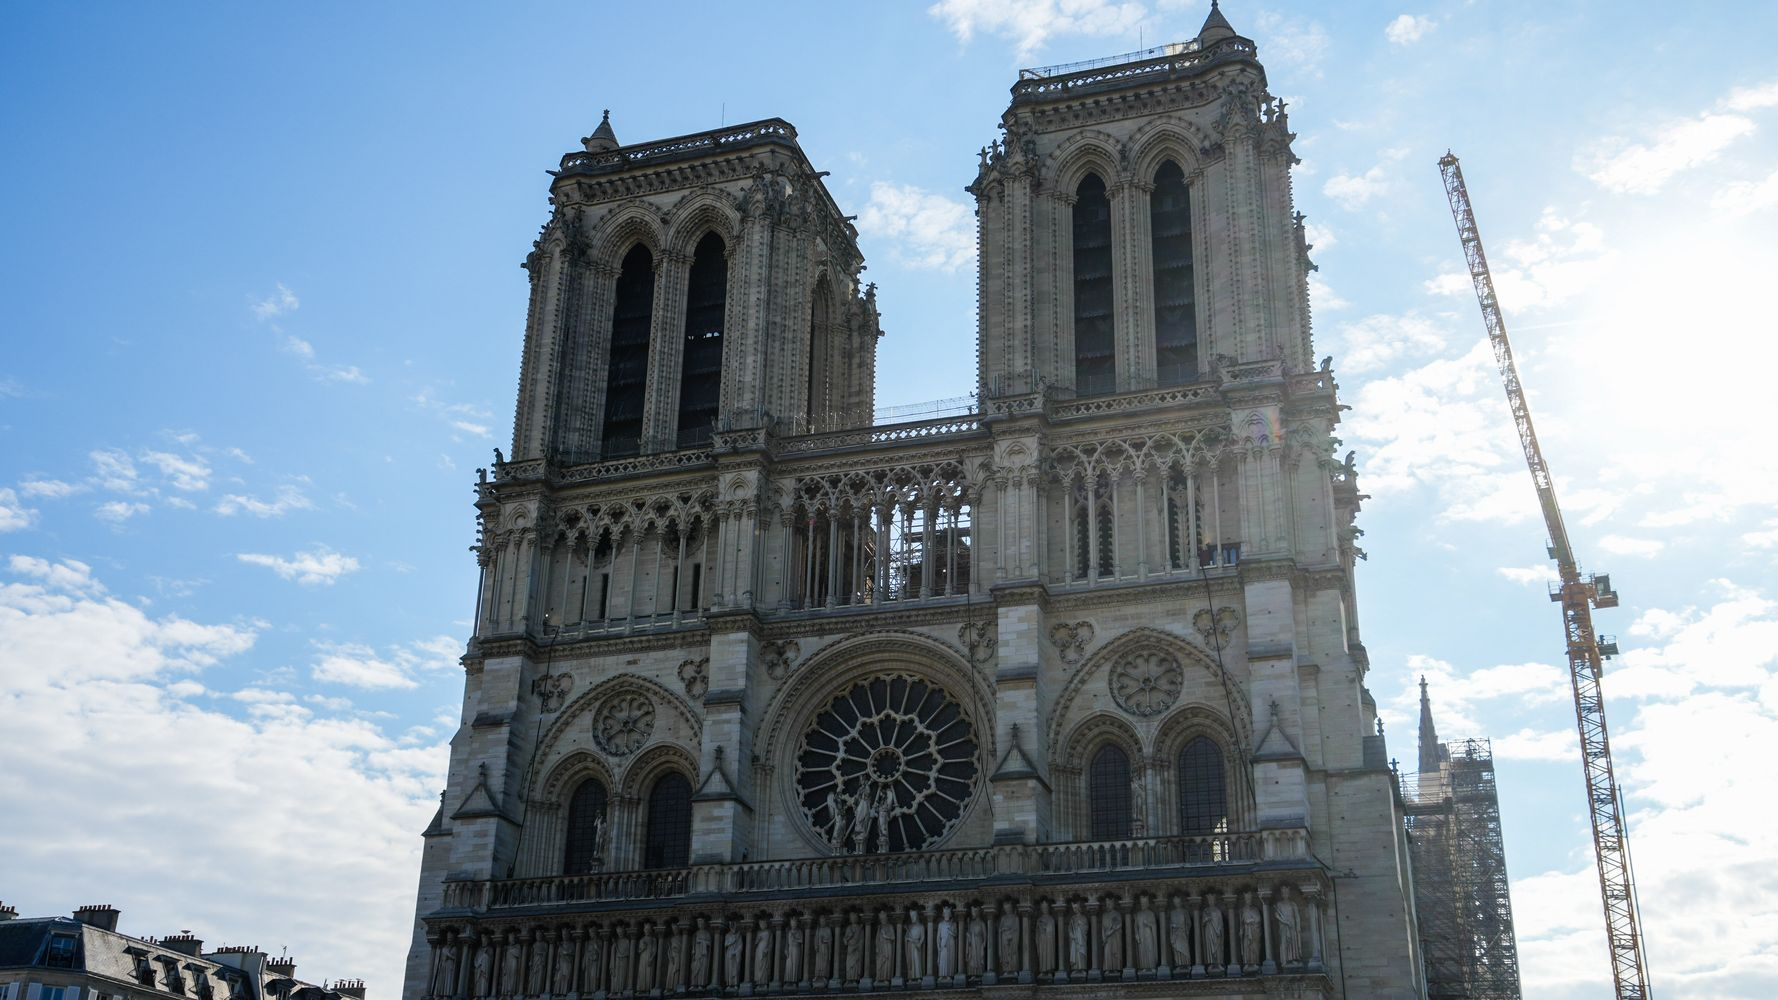 Rebuilding Of France's Notre Dame Cathedral To Begin After 2019 Fire